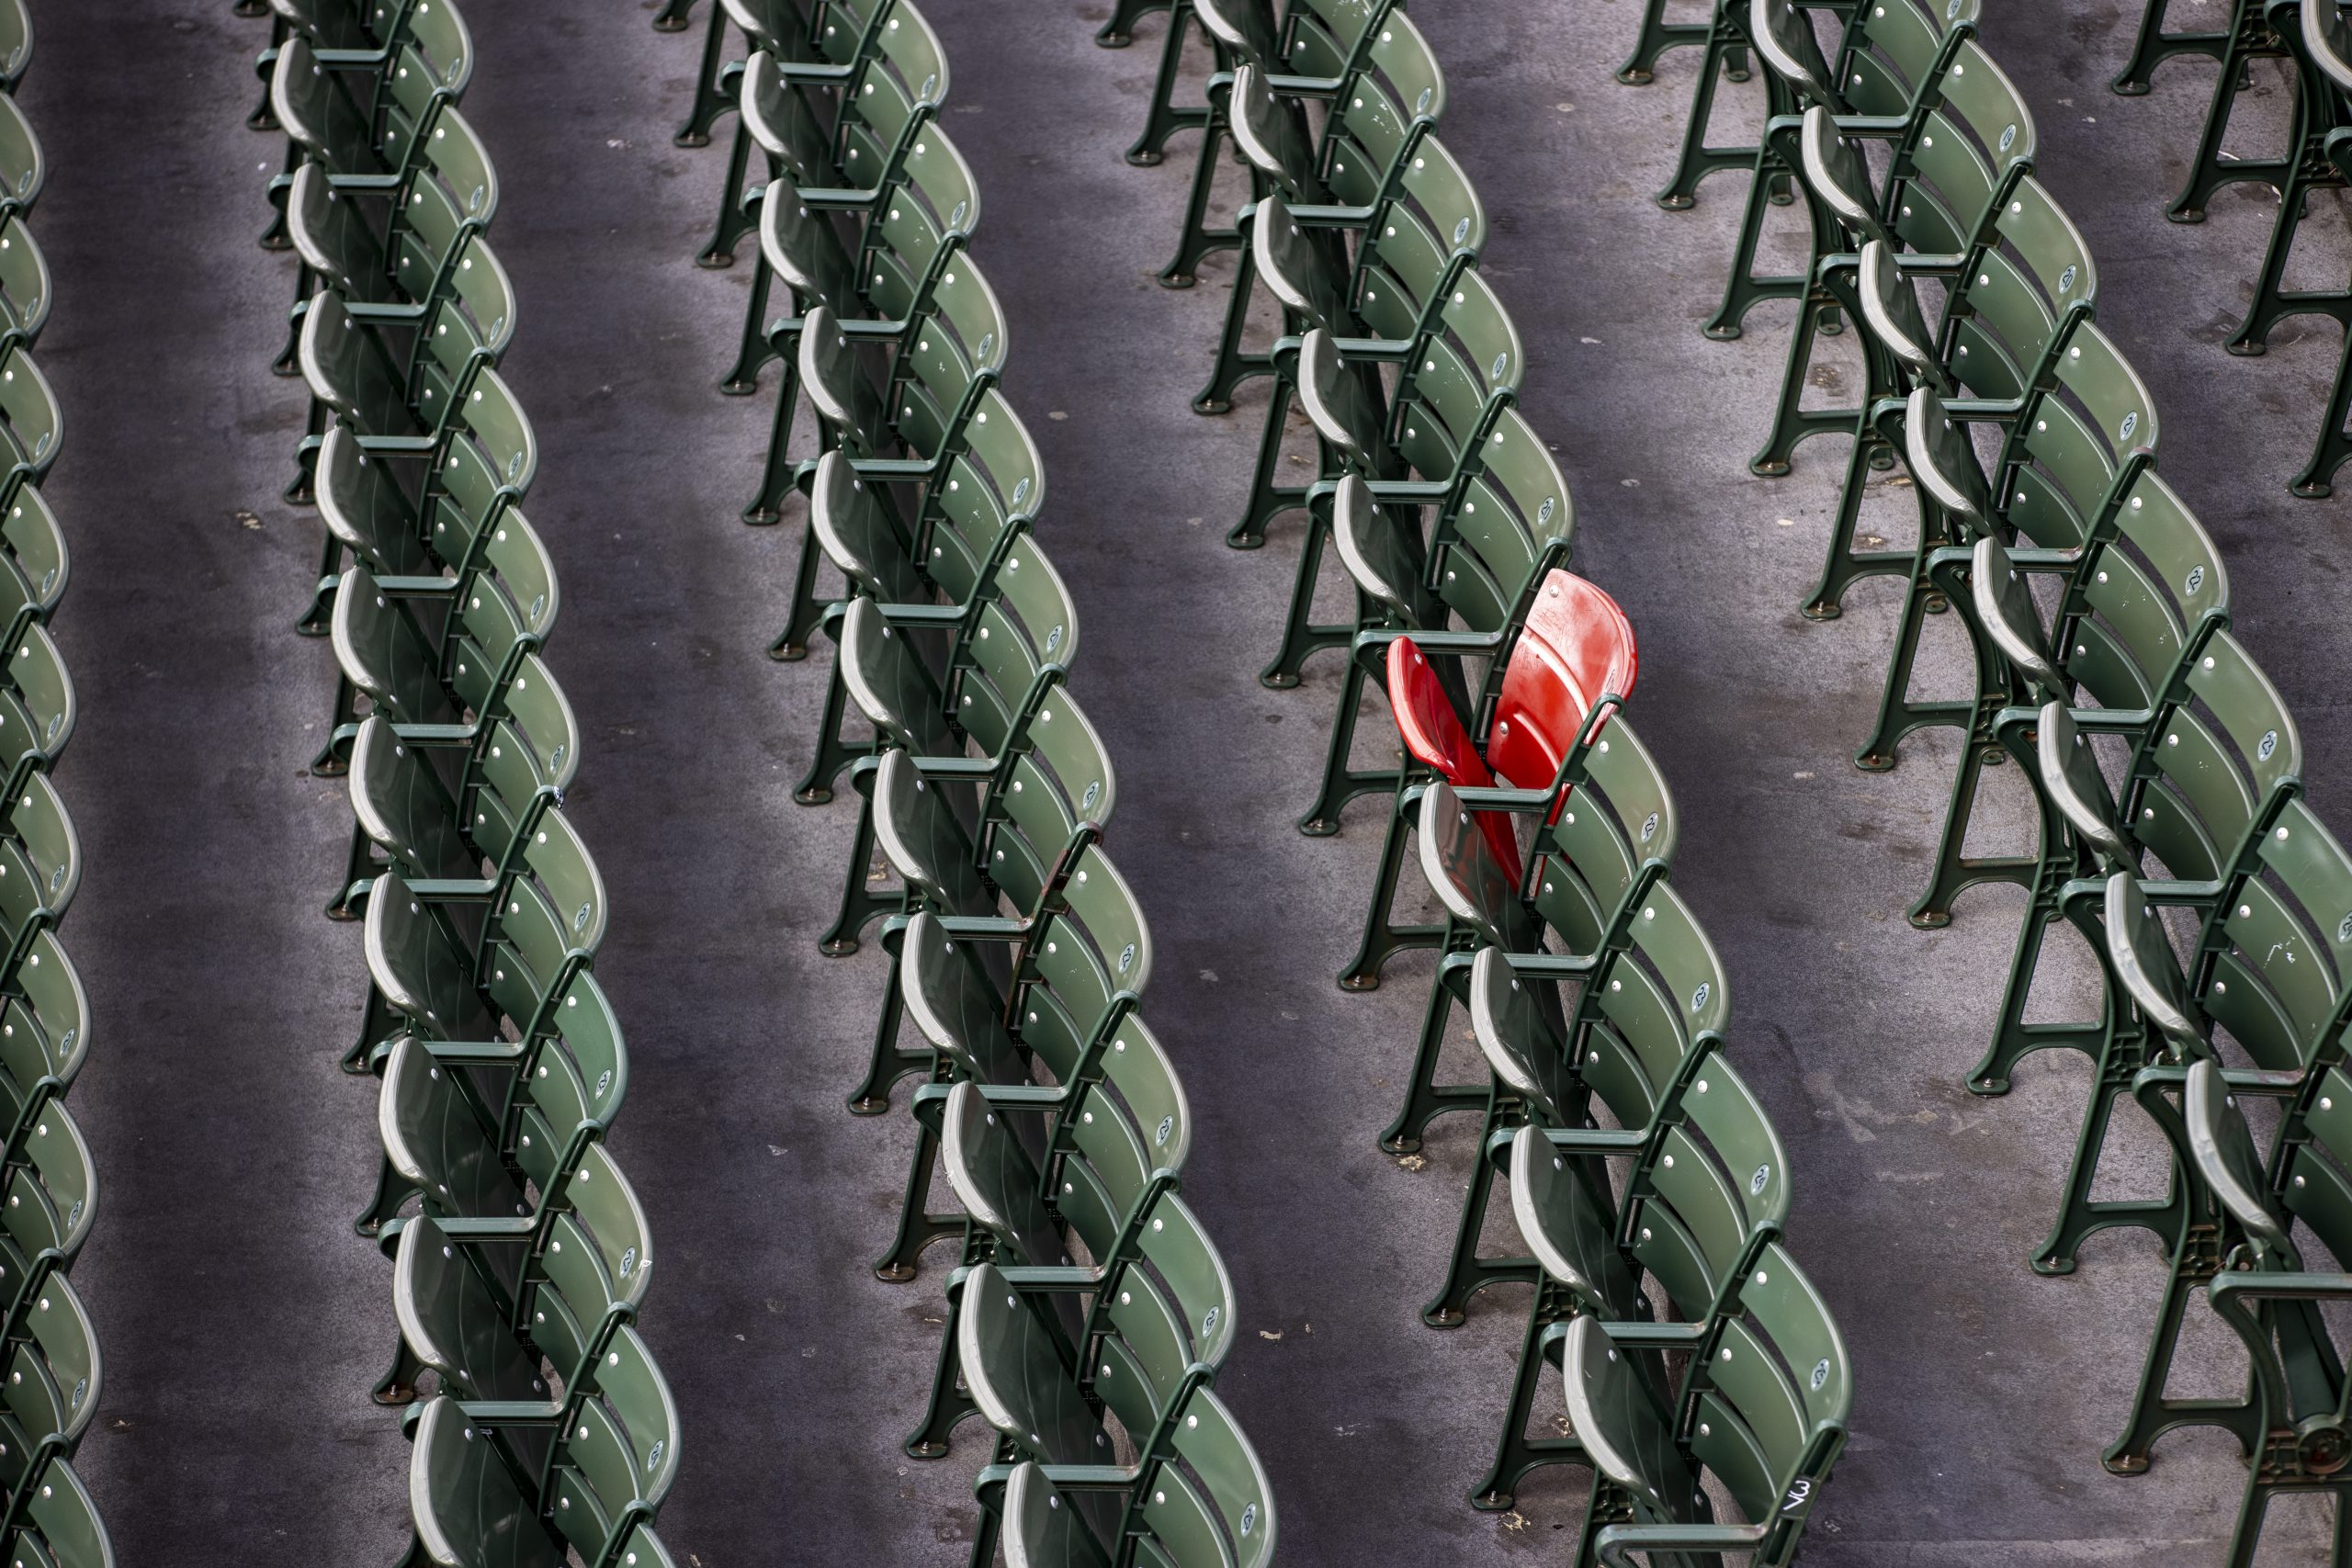 BOSTON, MA - APRIL 16: The red seat, which celebrates the longest home run hit in Fenway Park by Ted Williams, in the bleachers on April 16, 2020. Fenway Park in Boston remains closed during the coronavirus emergency. (Photo by Stan Grossfeld/The Boston Globe via Getty Images)